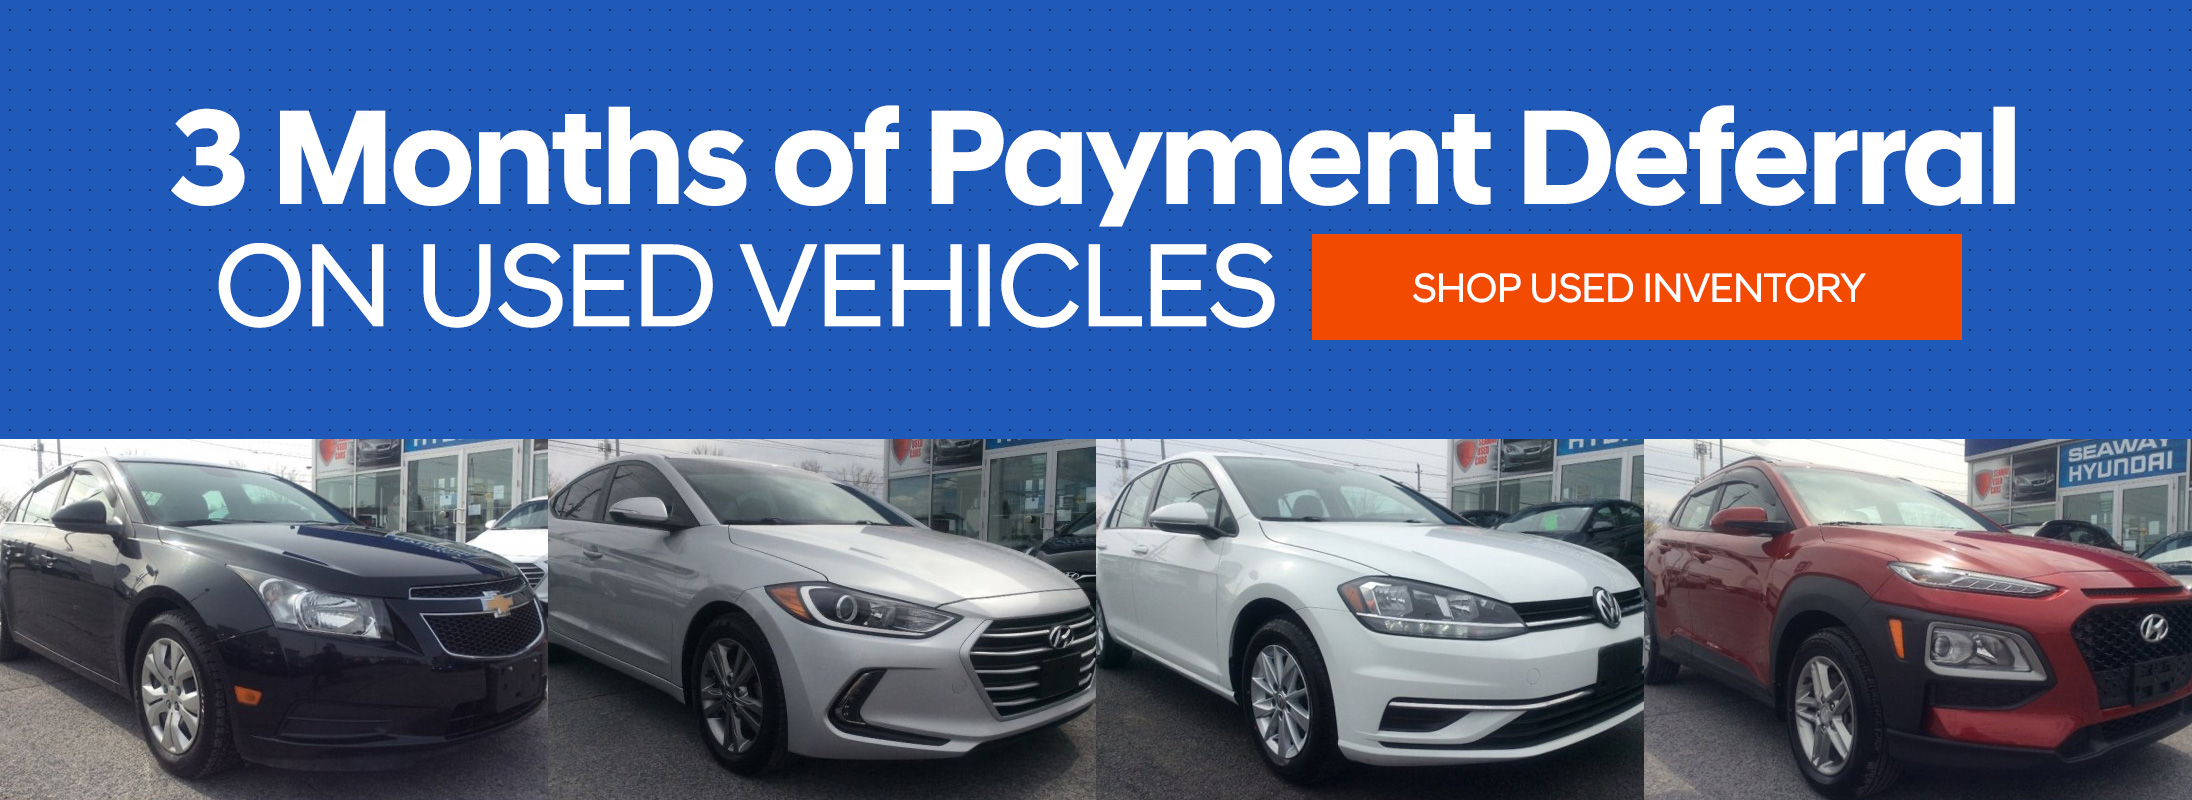 3 months of payment deferral on used vehicles - shop used inventory